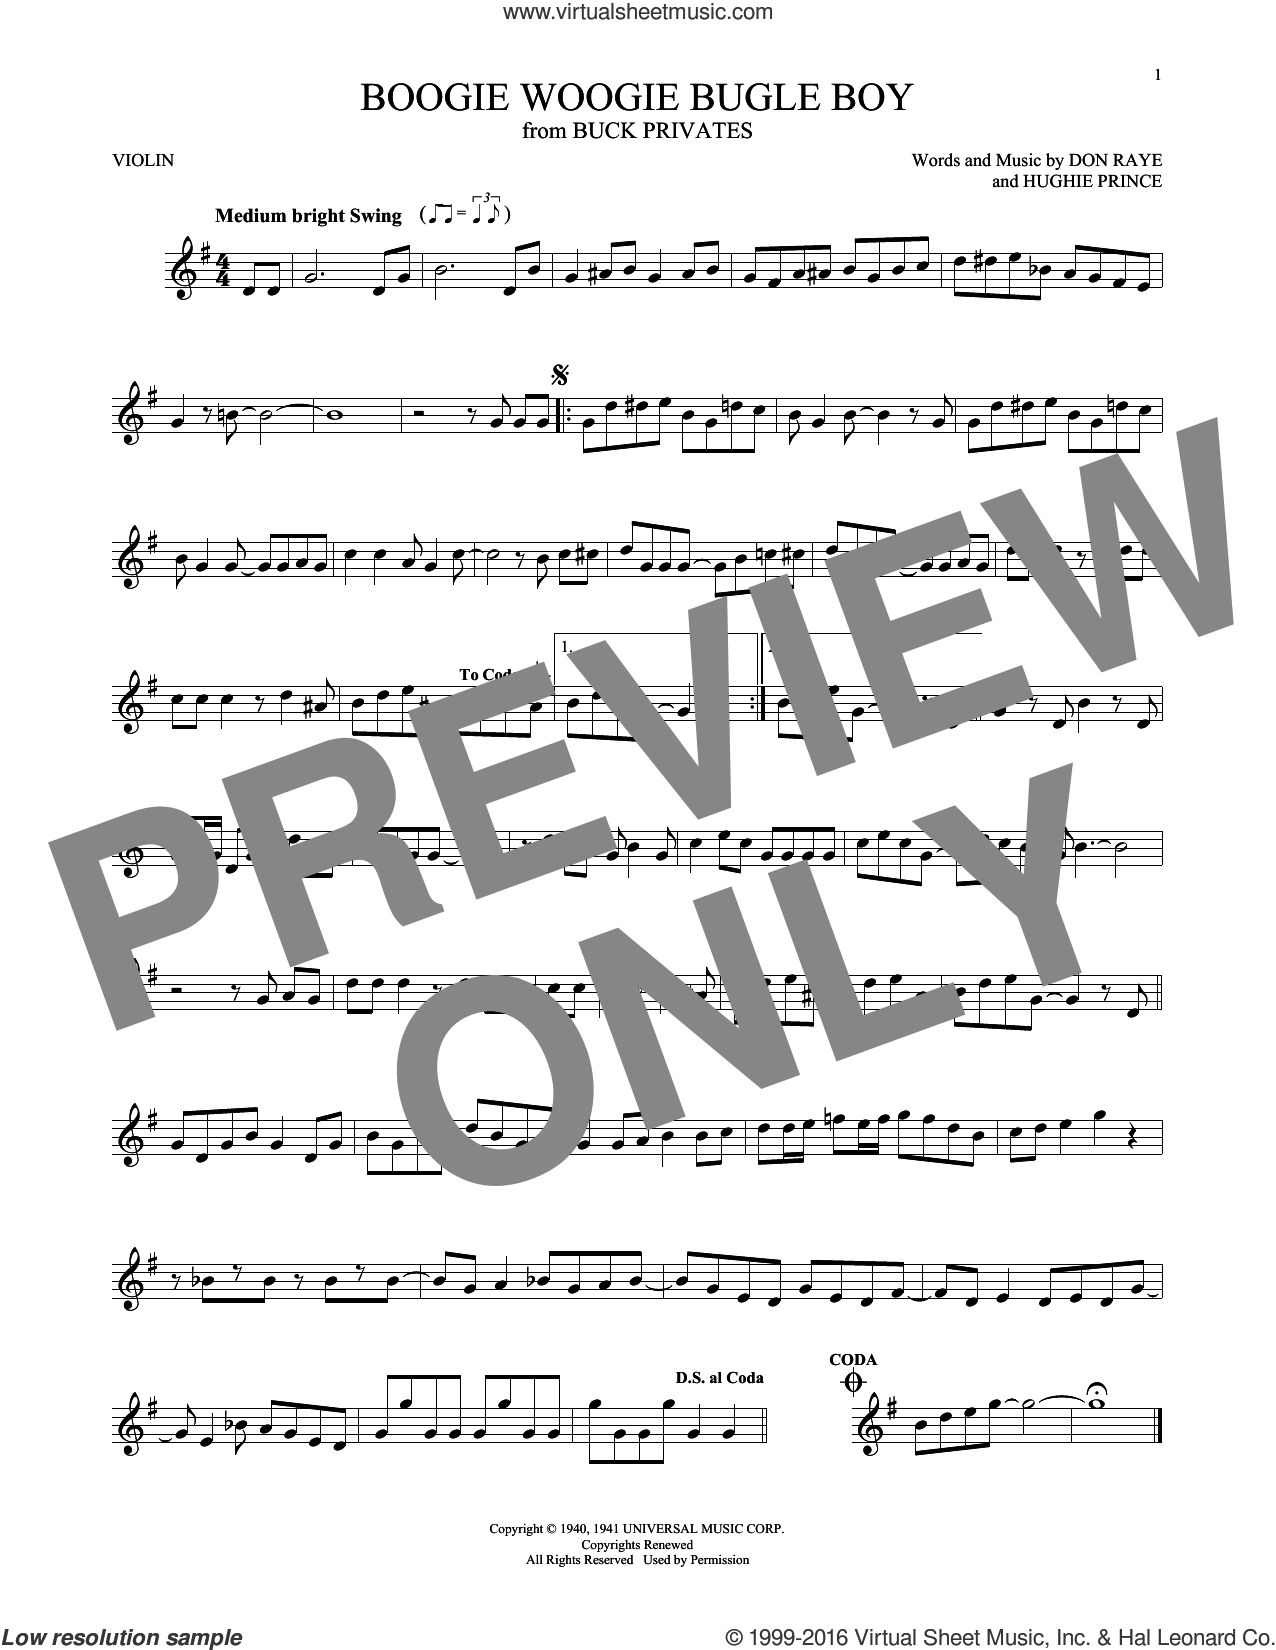 Boogie Woogie Bugle Boy sheet music for violin solo by Andrews Sisters, Bette Midler, Don Raye and Hughie Prince, intermediate skill level